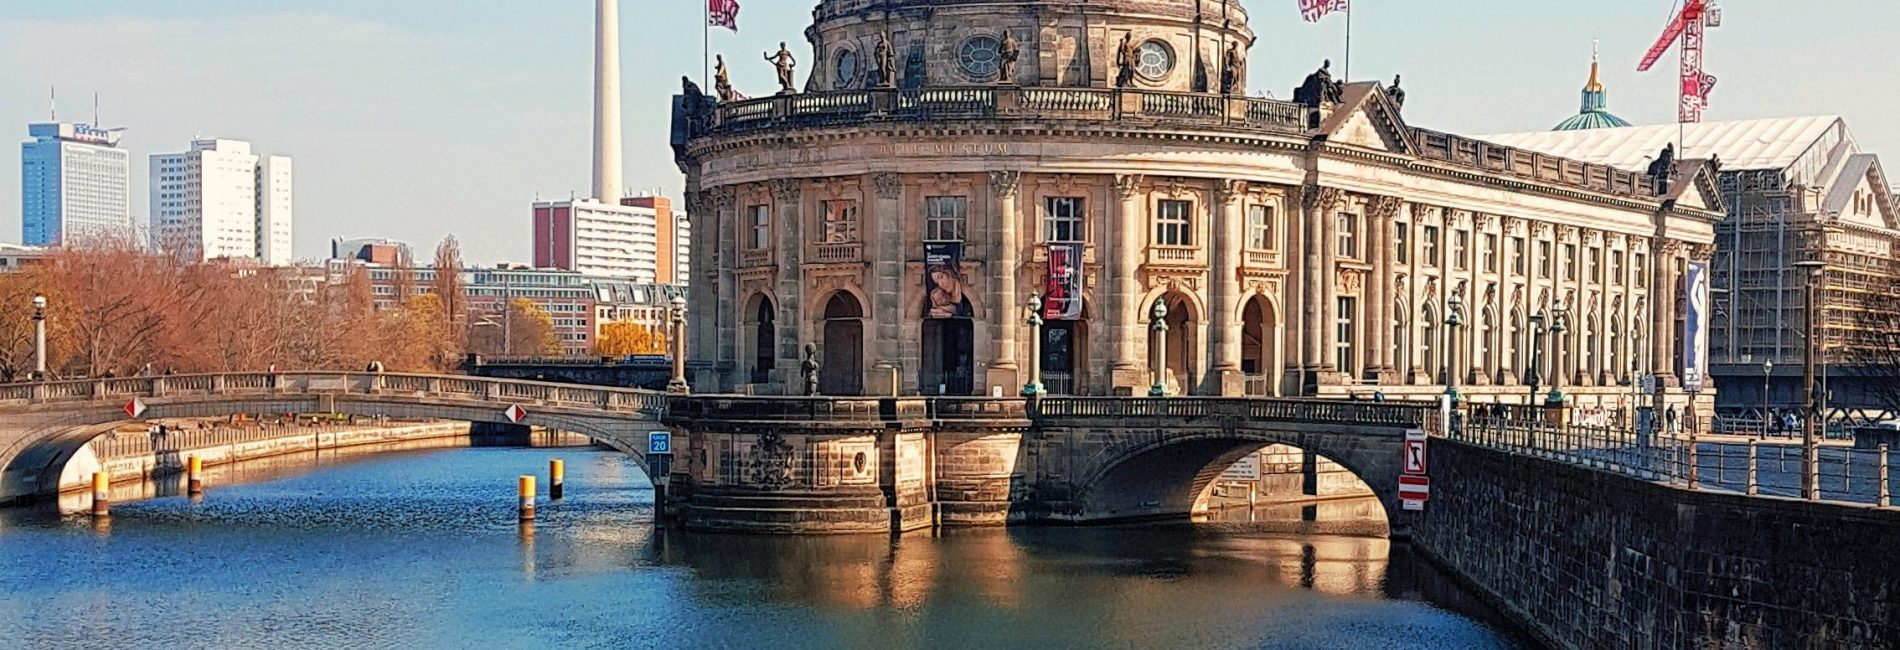 Contemporary art galleries in Berlin you need to visit